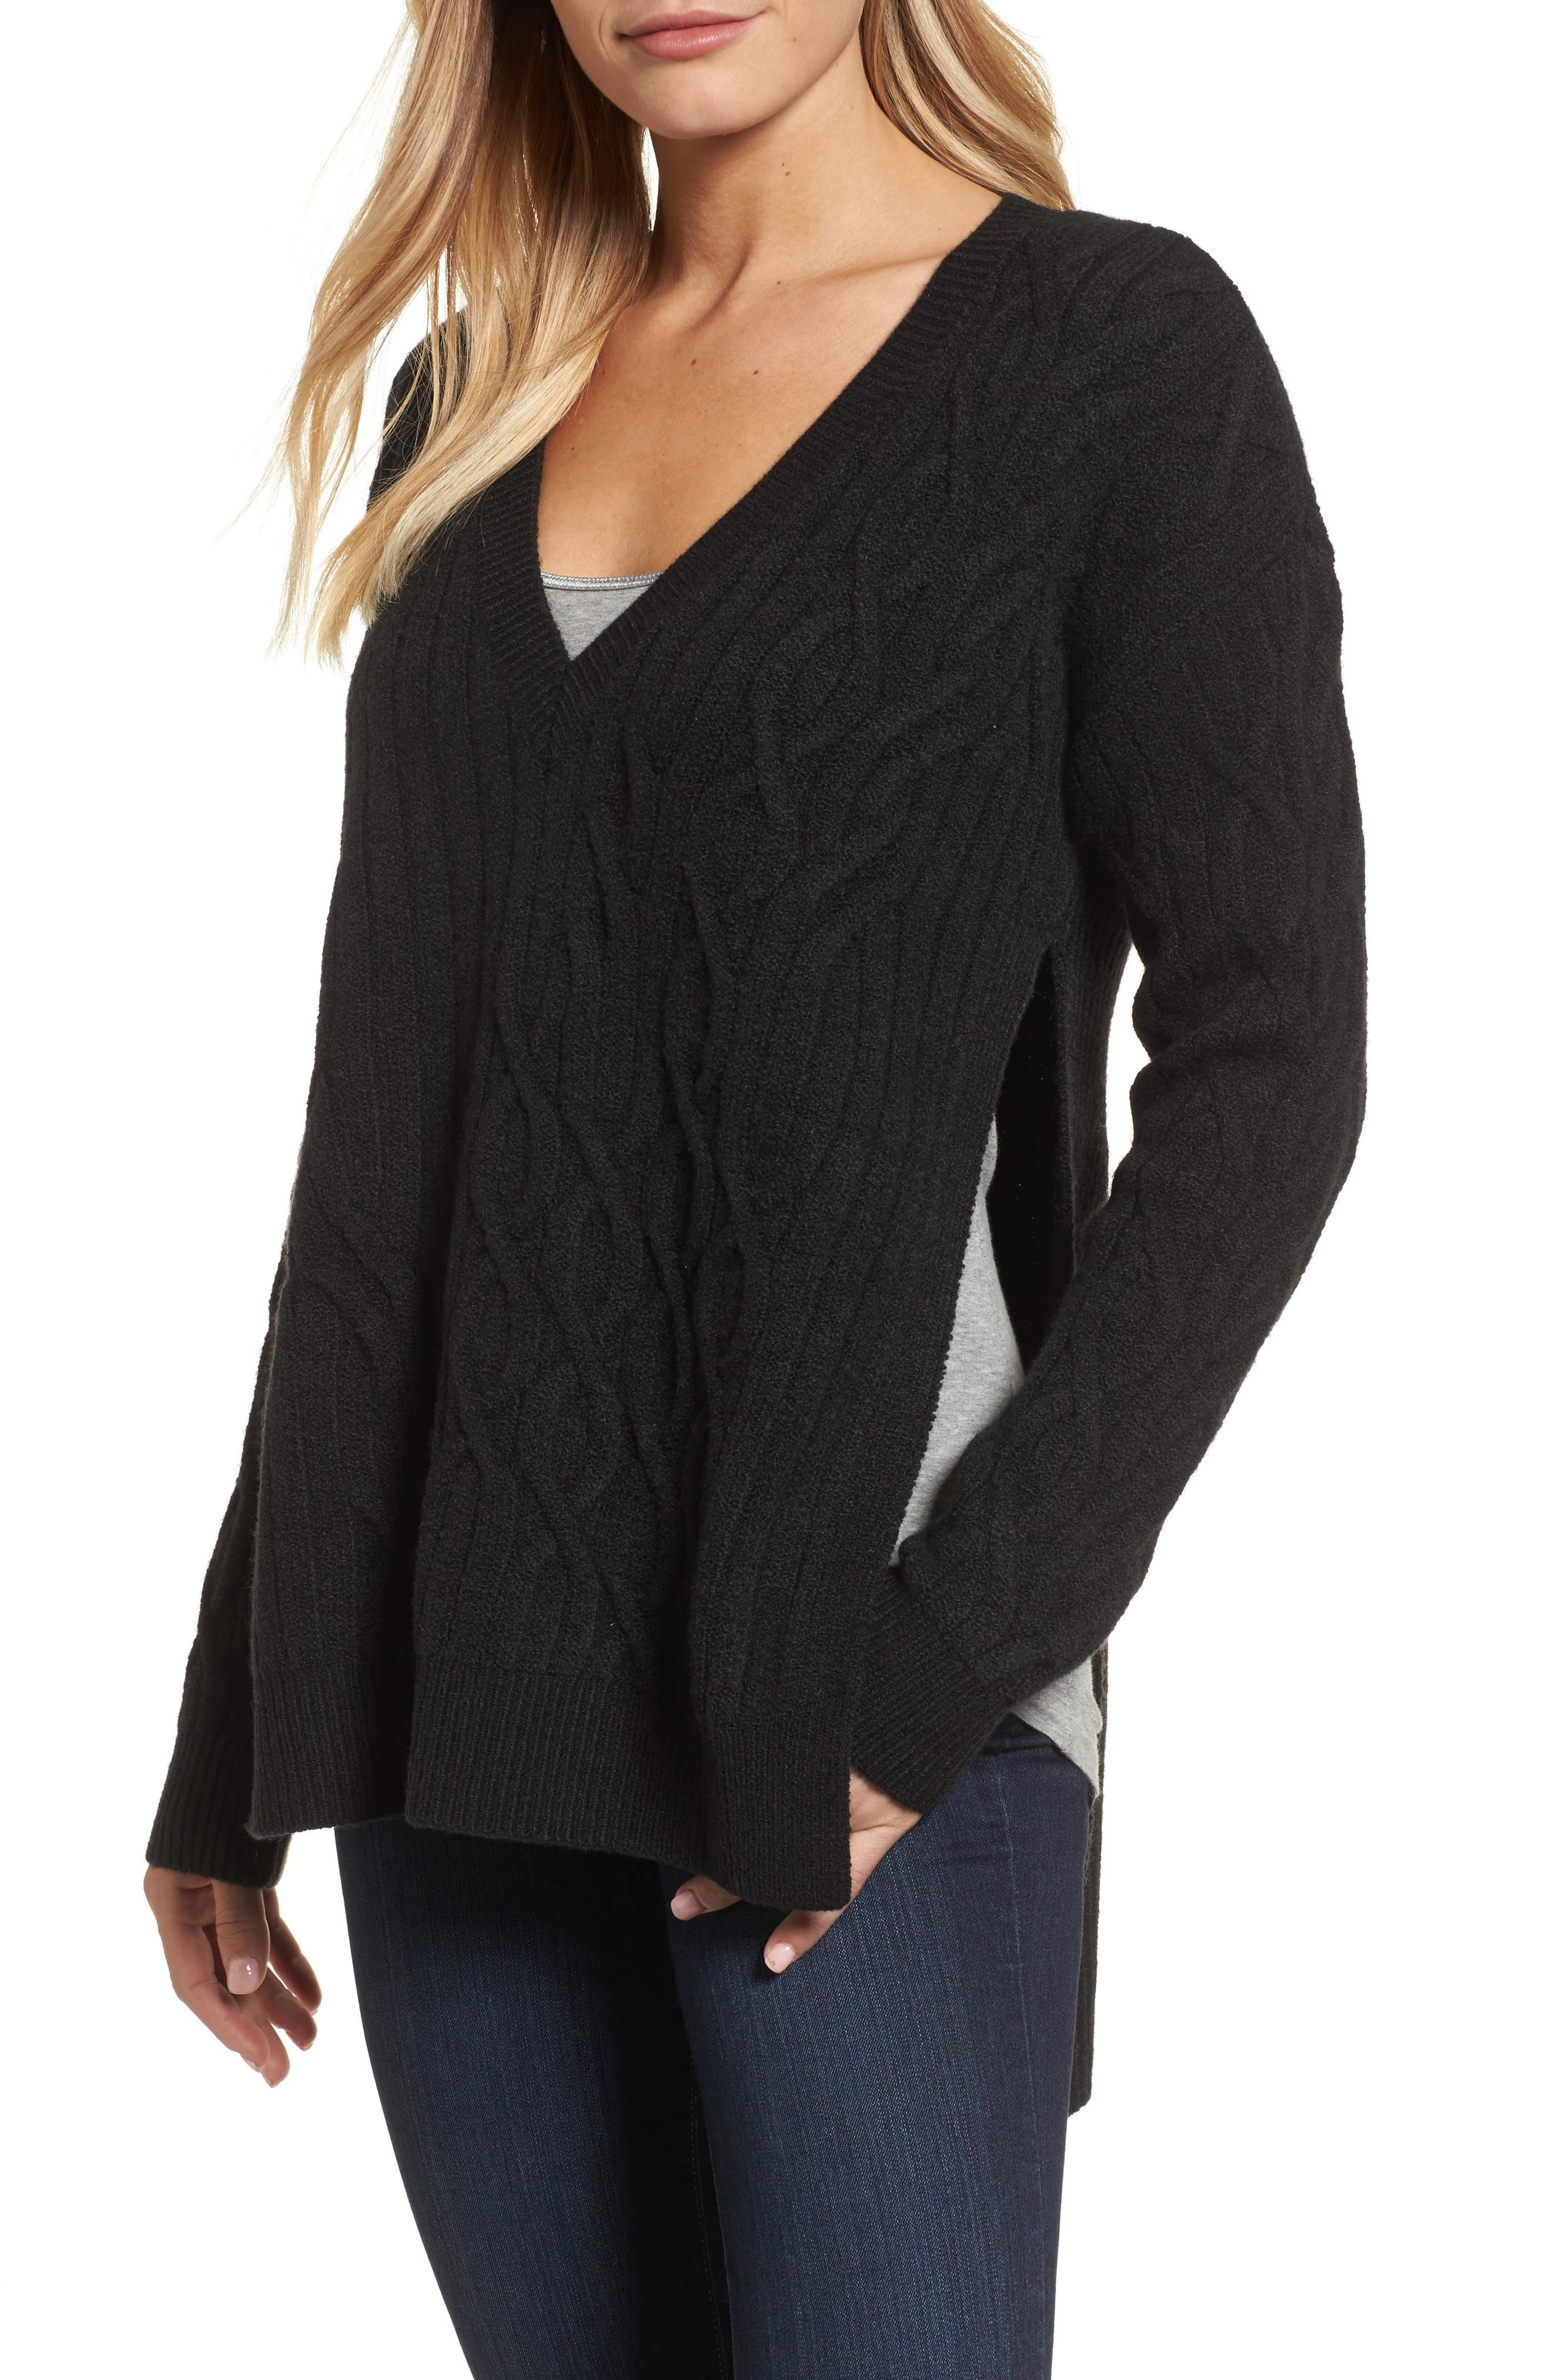 Irregular Cable Knit Sweater,                         Main,                         color, Black